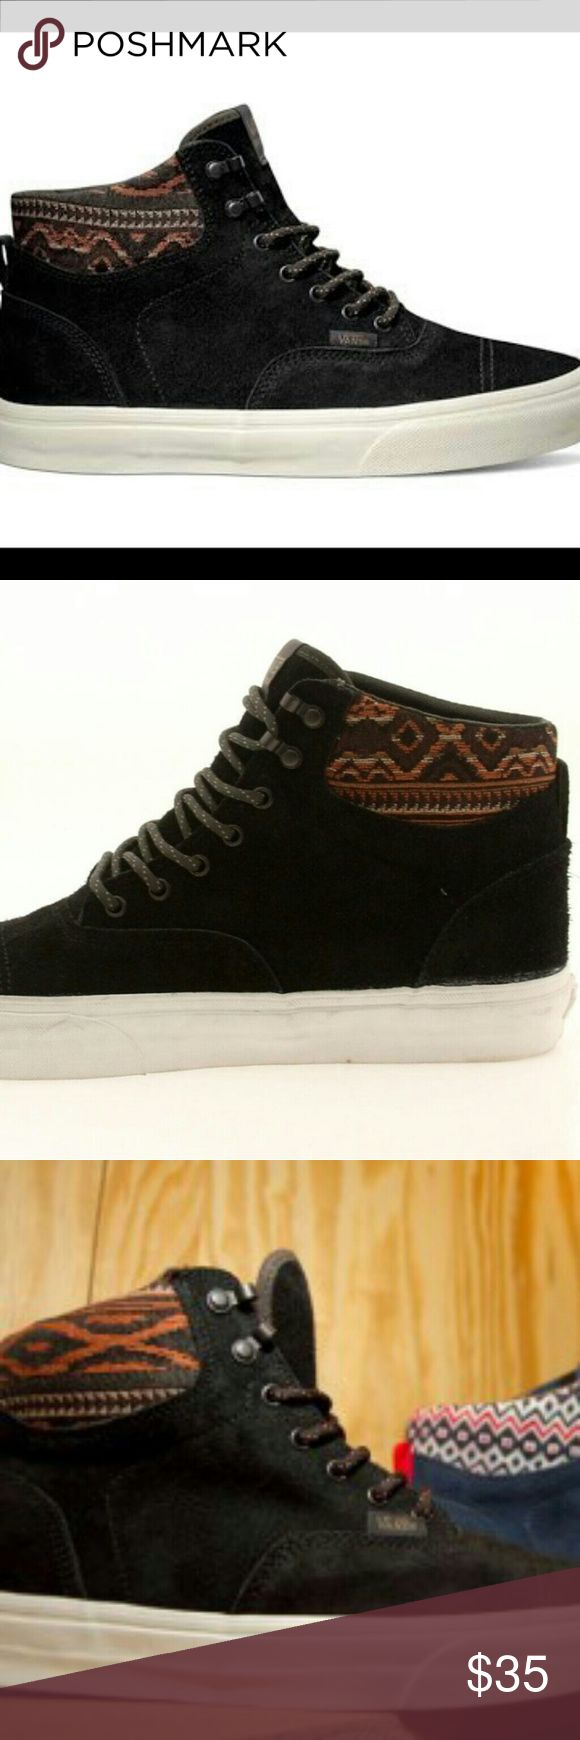 Nib mens vans price firm This is a new pair men size 13 high top Mountain boots Vans Shoes